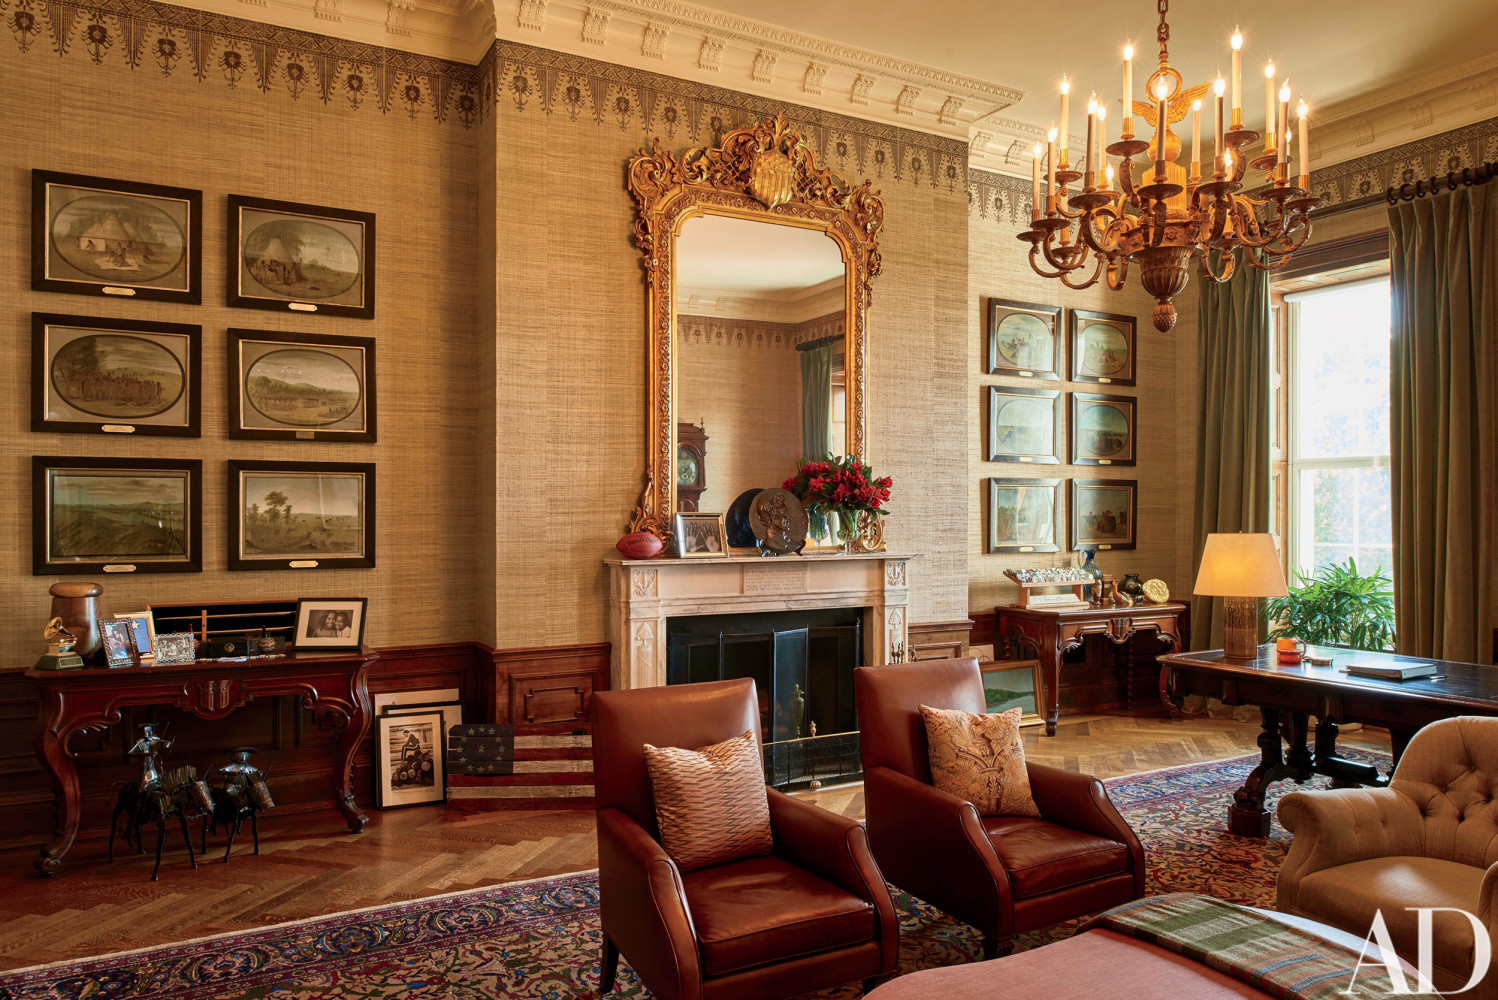 Look inside the obamas 39 stylish white house home nbc news for The white housse